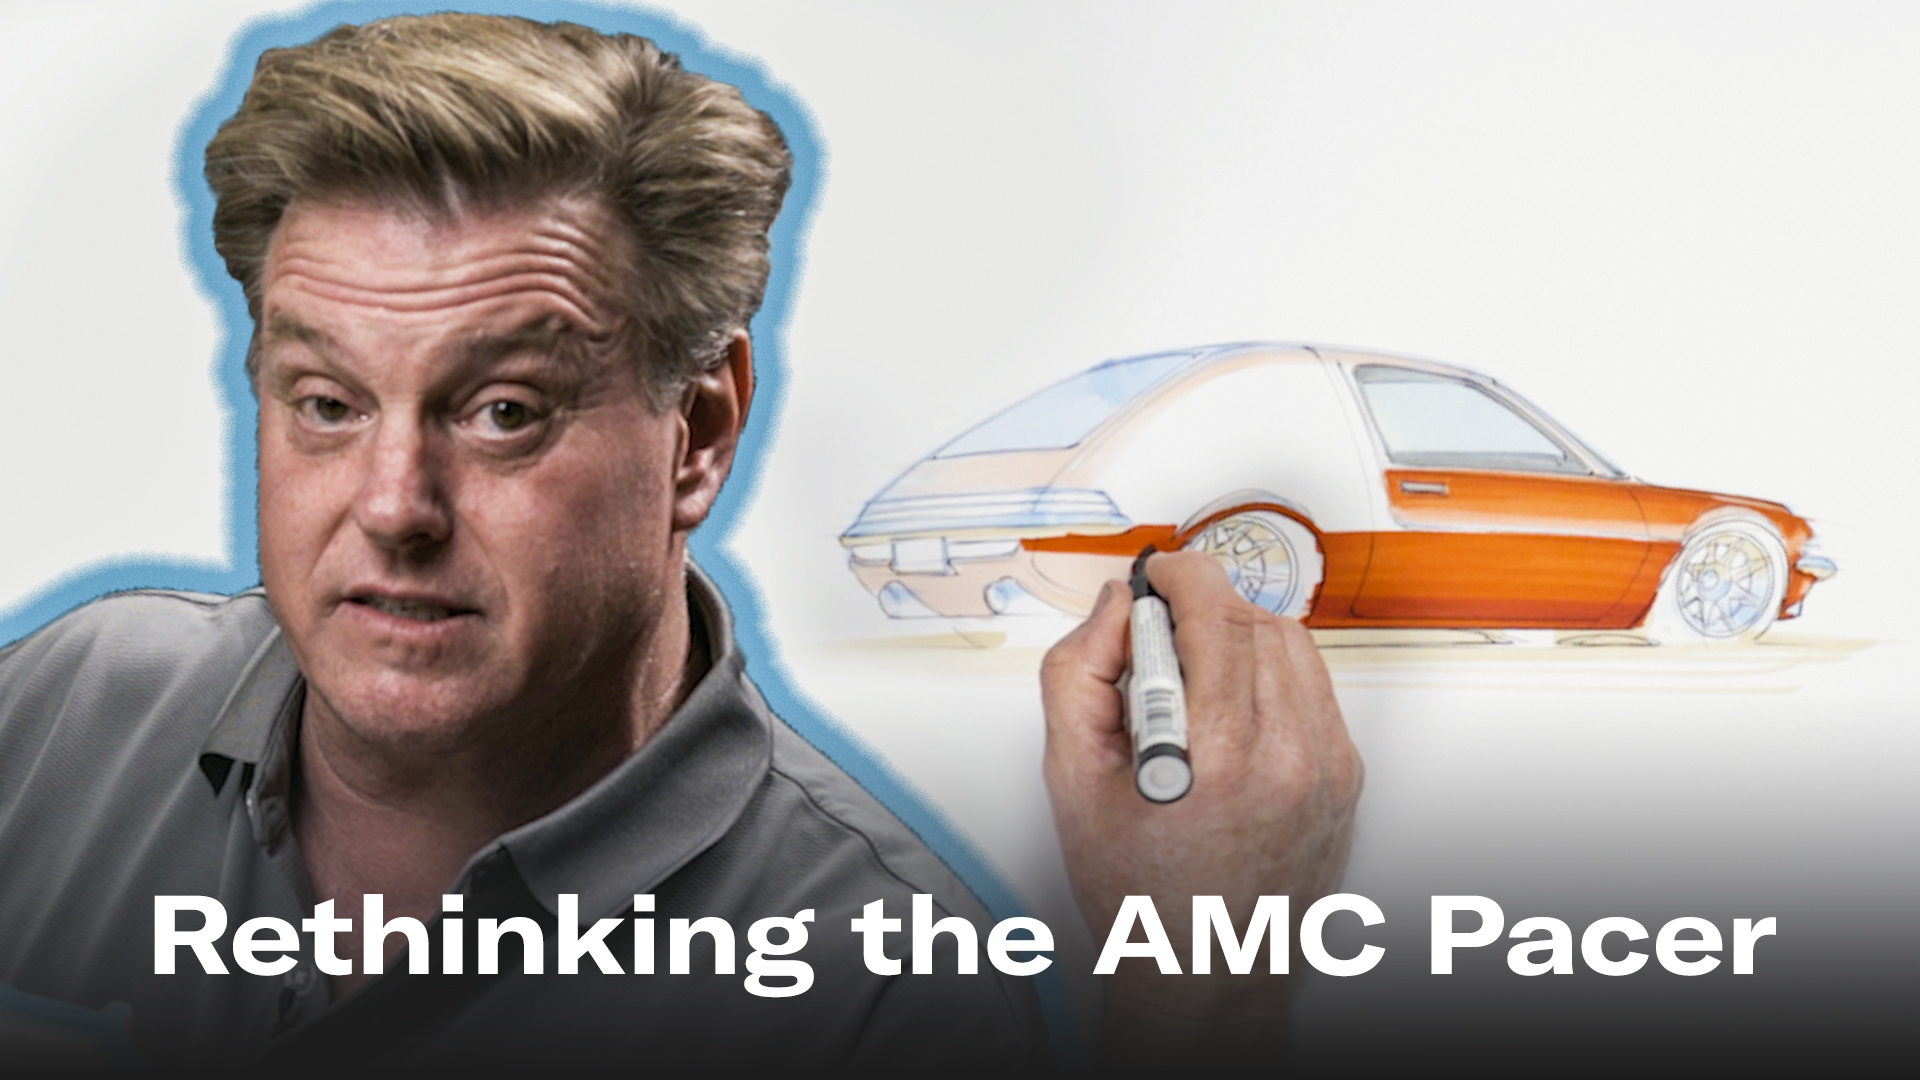 Chip Foose draws a Pacer